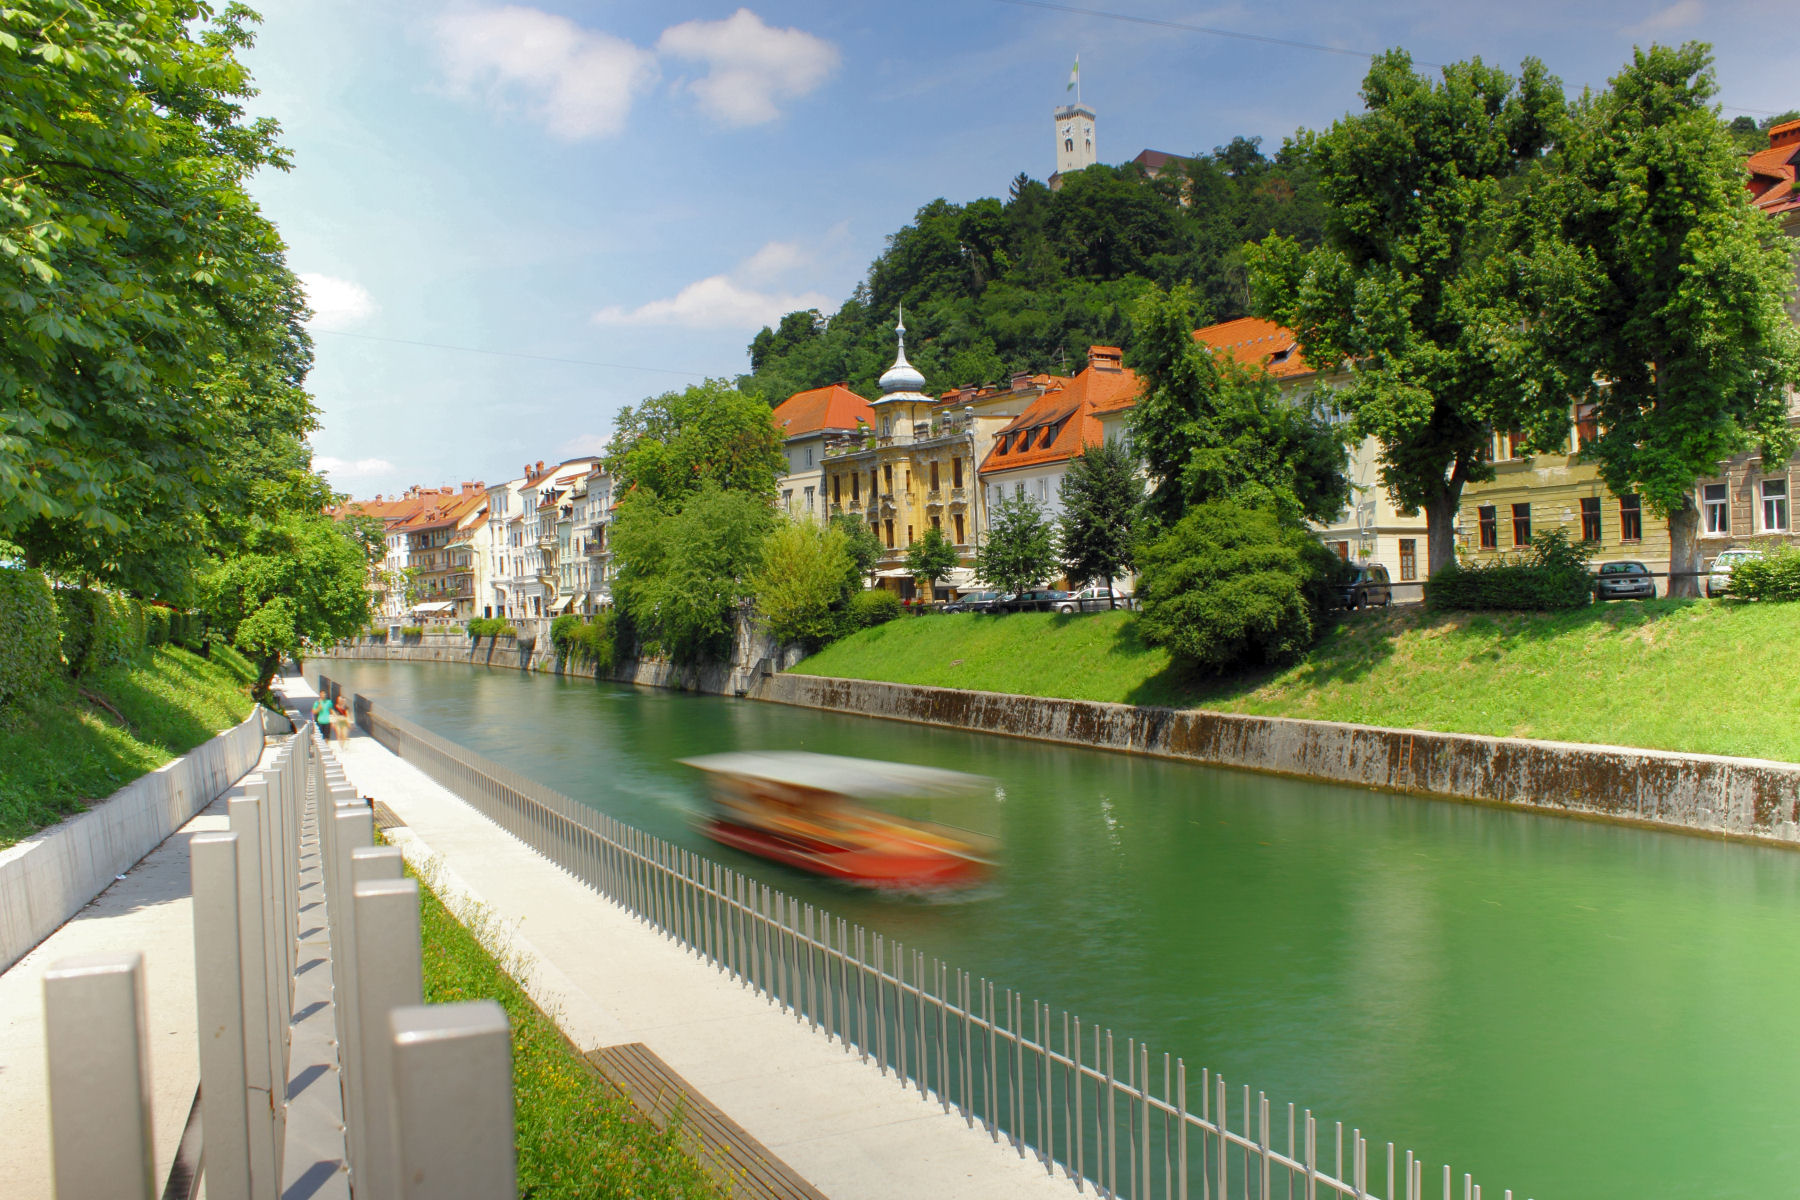 Ljubljanica river runs through Ljubljana Old Town